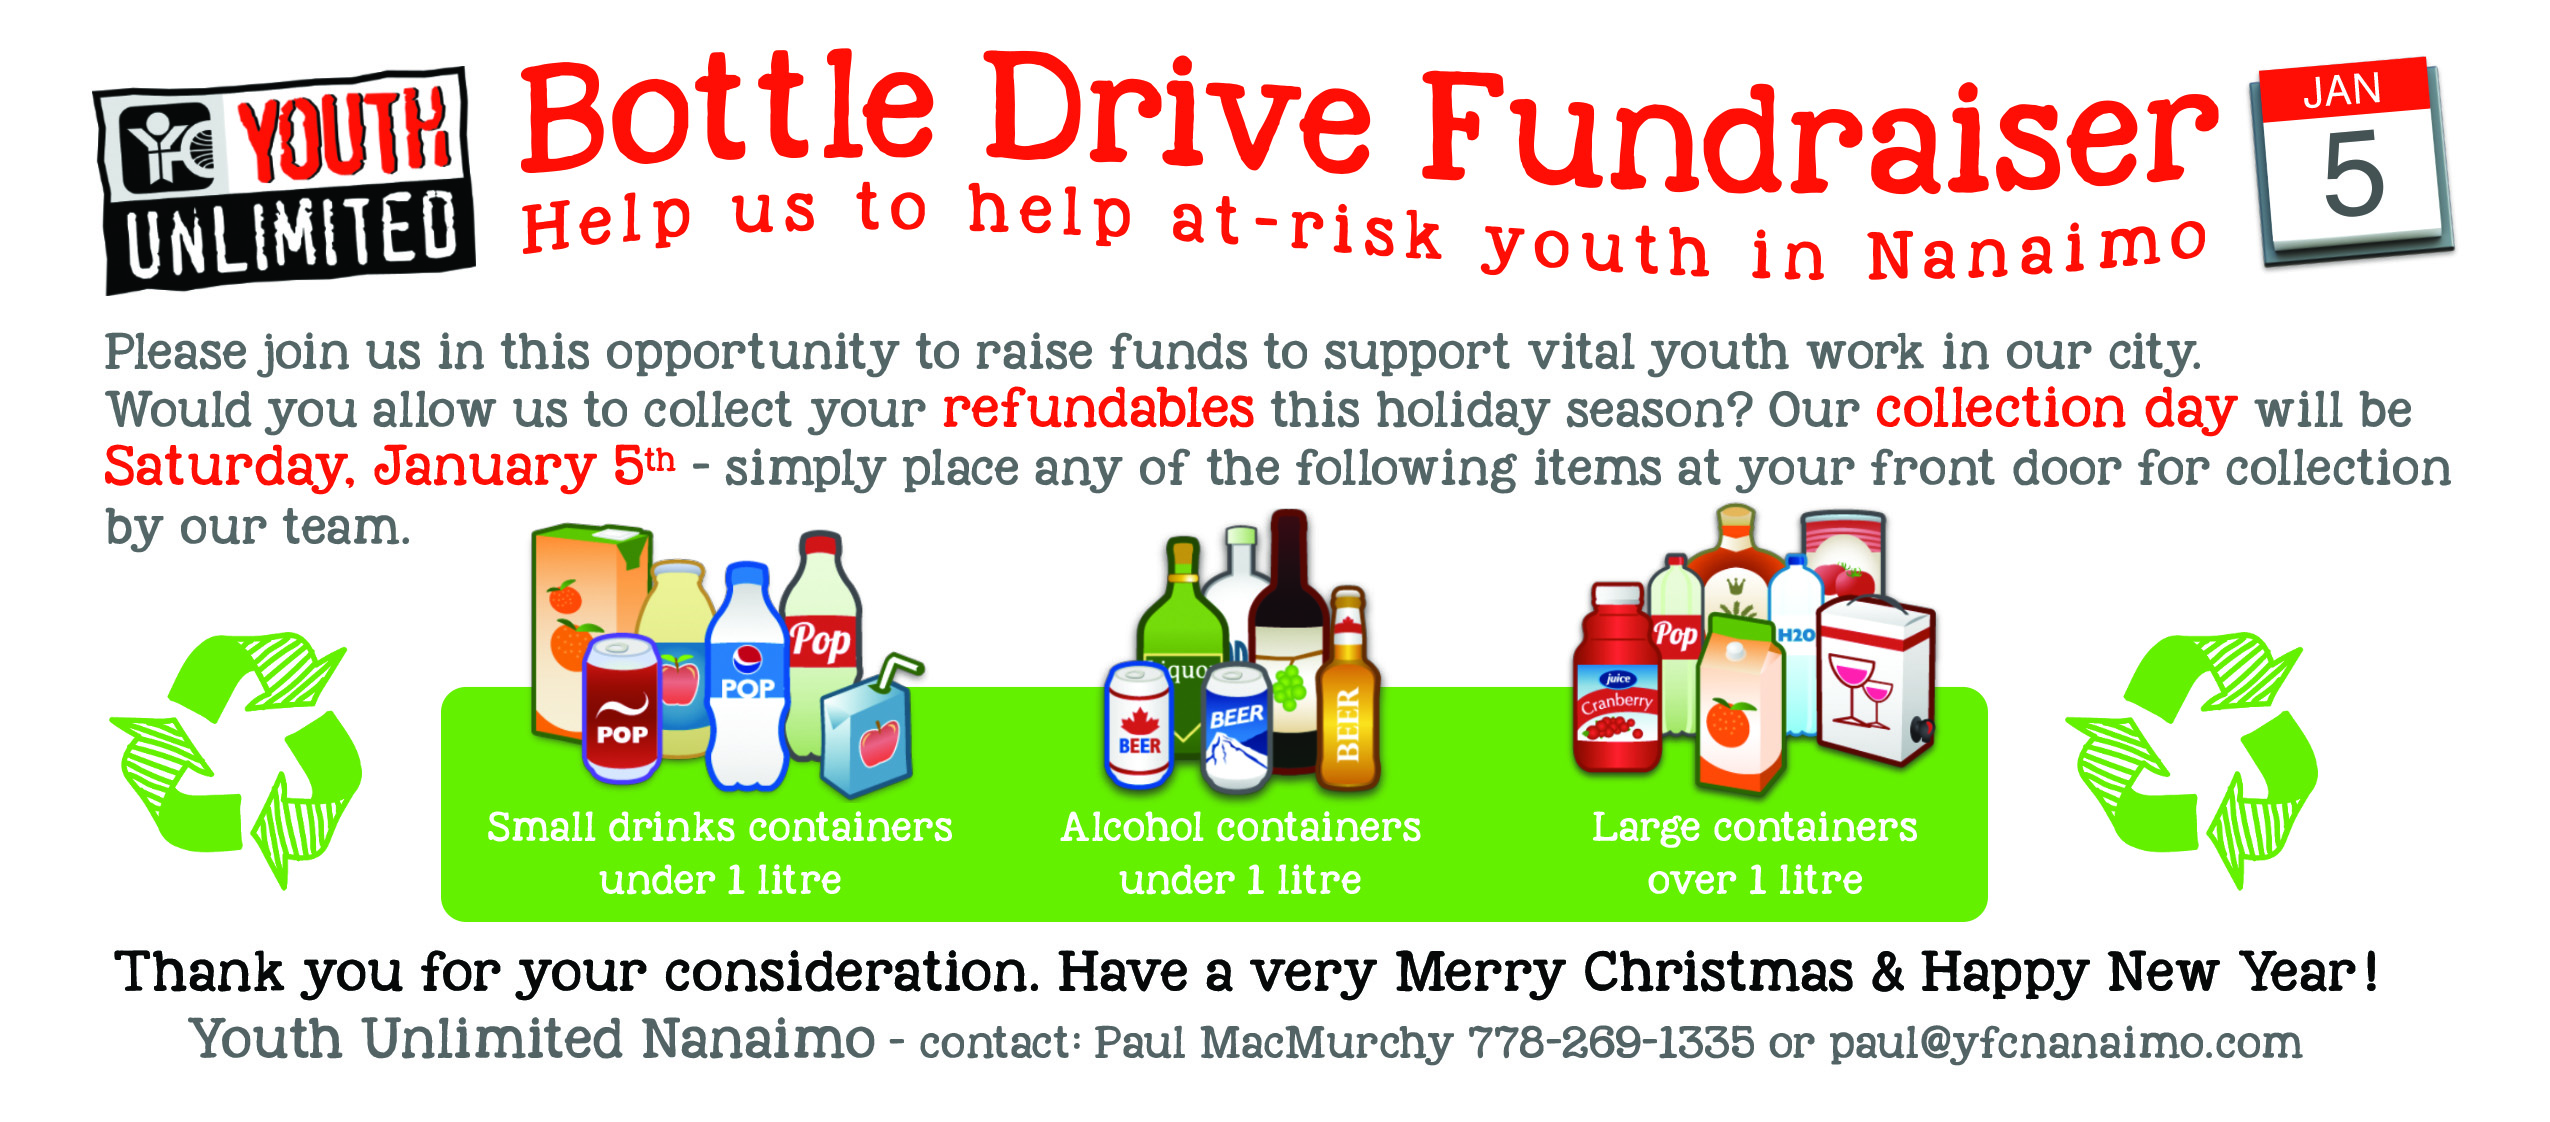 Bottle Drive Fundraiser for Youth Unlimited Nanaimo in Nanaimo on Saturday January 5th